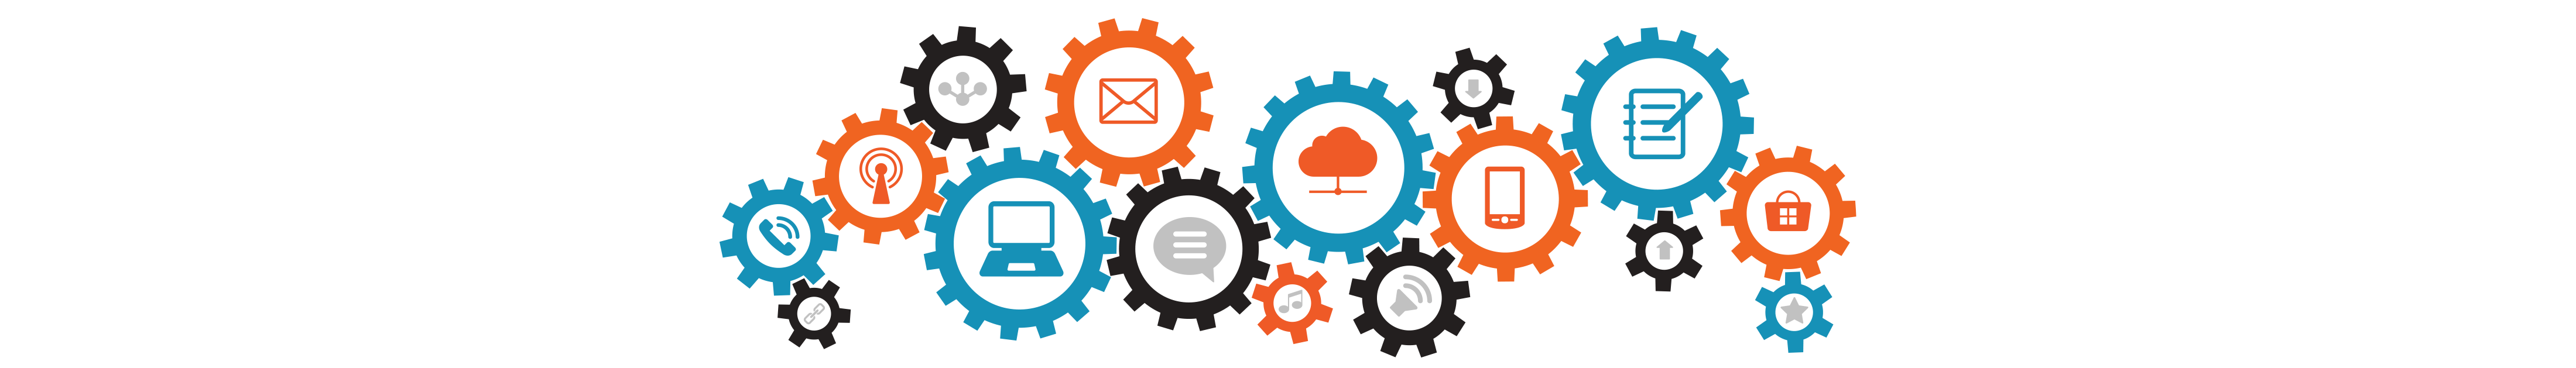 decorative illustration showing gears with digital icons in them